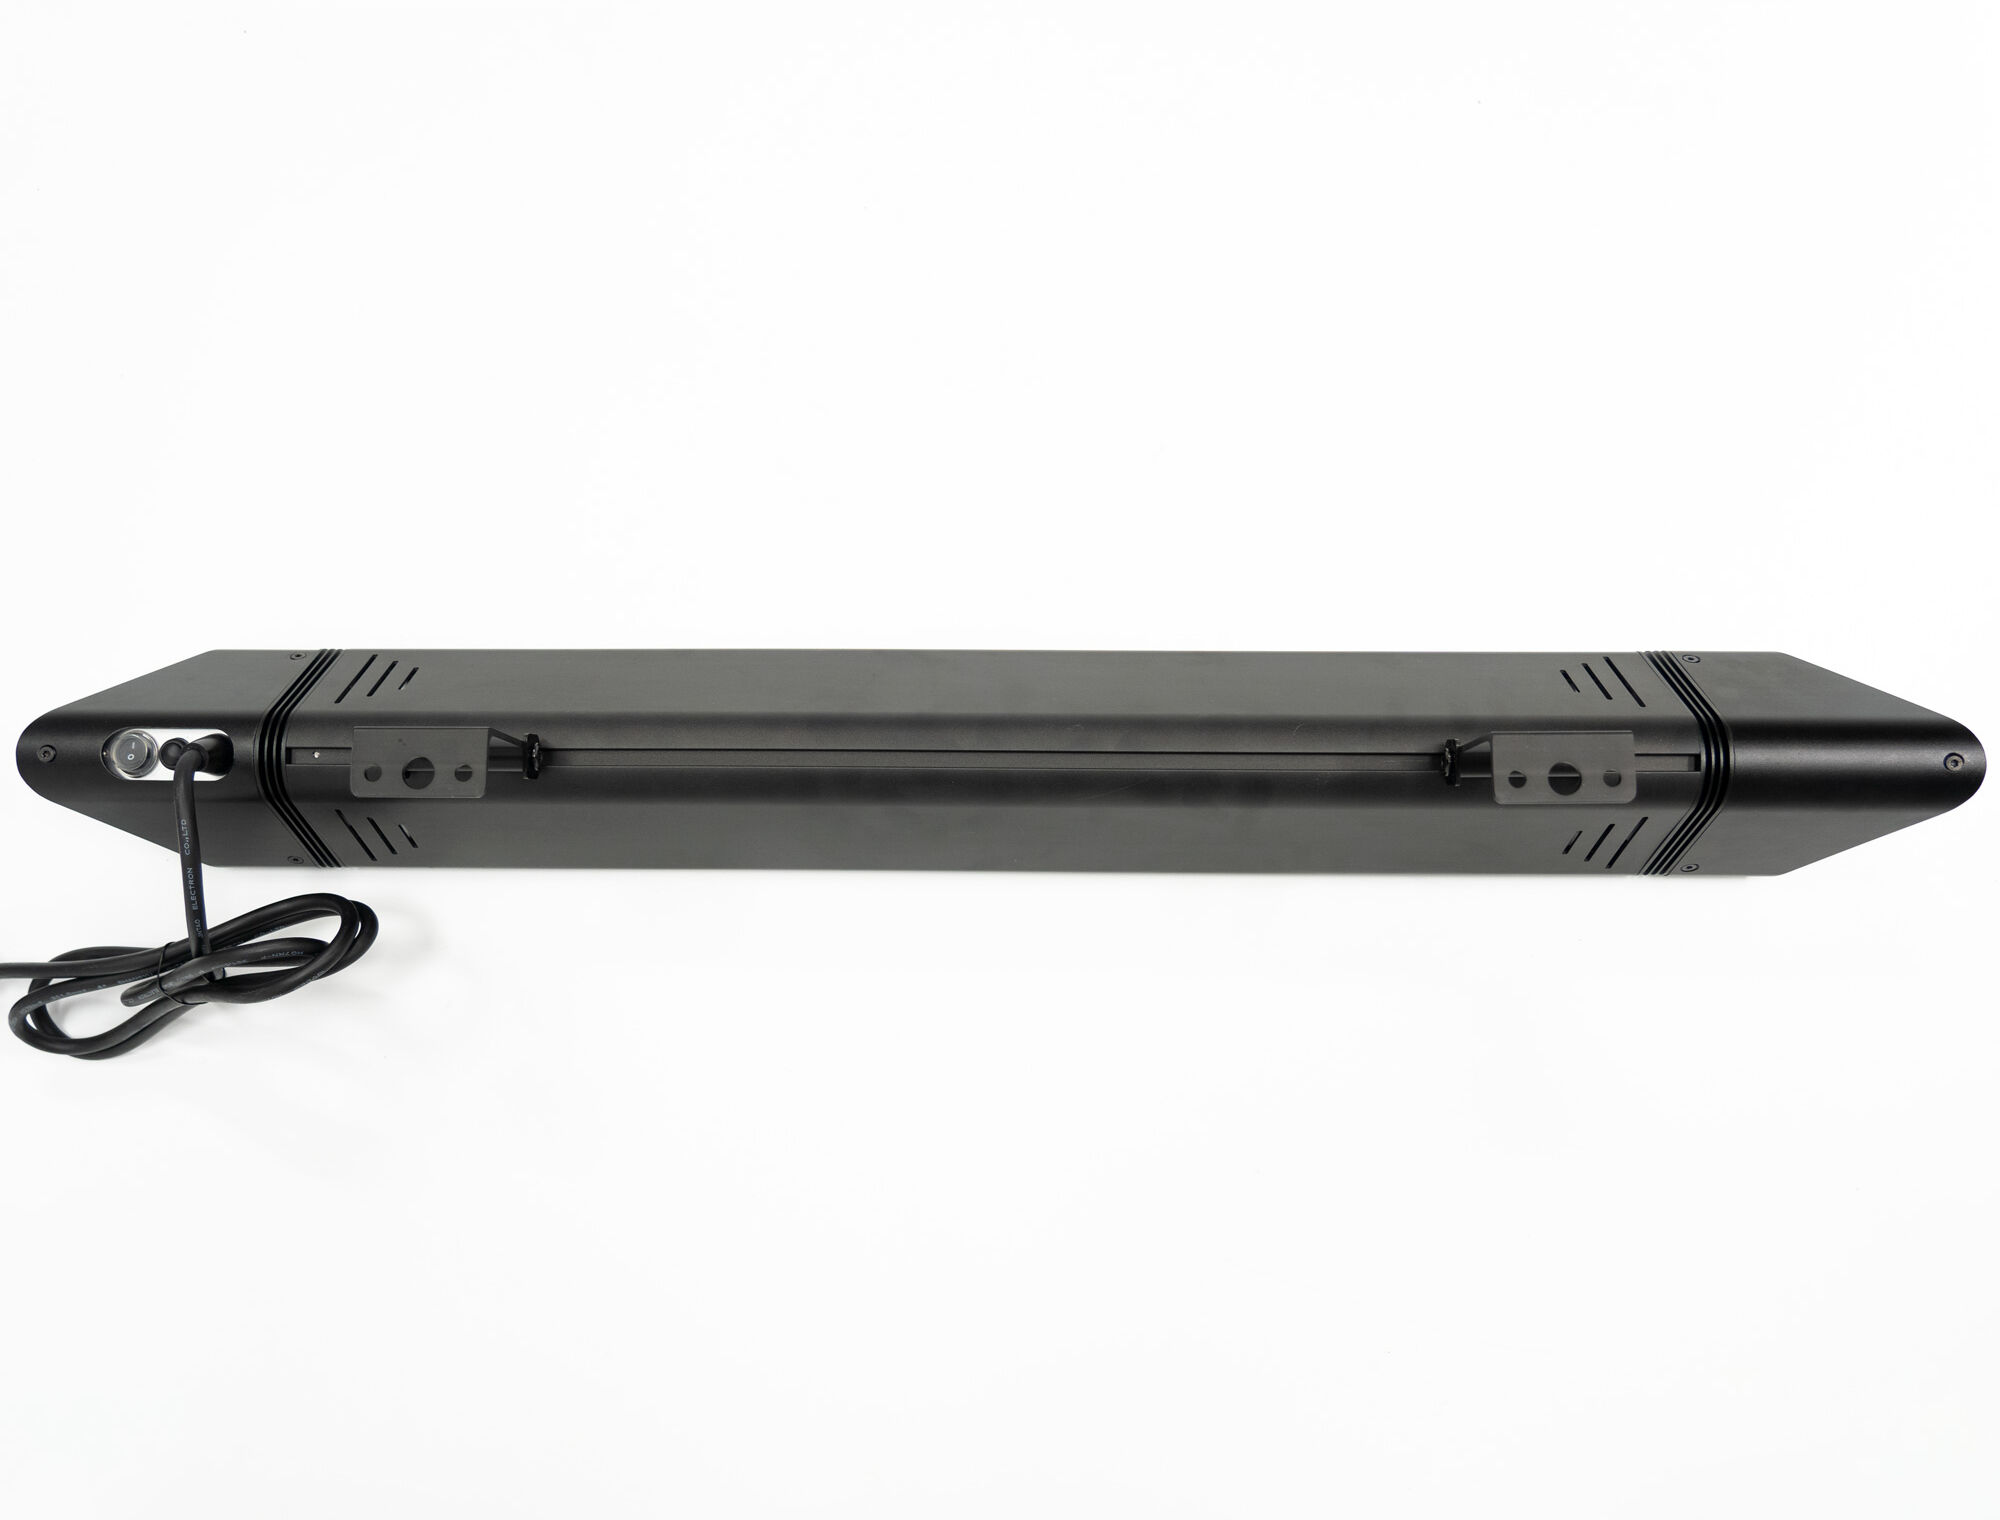 Compact outdoor heater with flexible mount